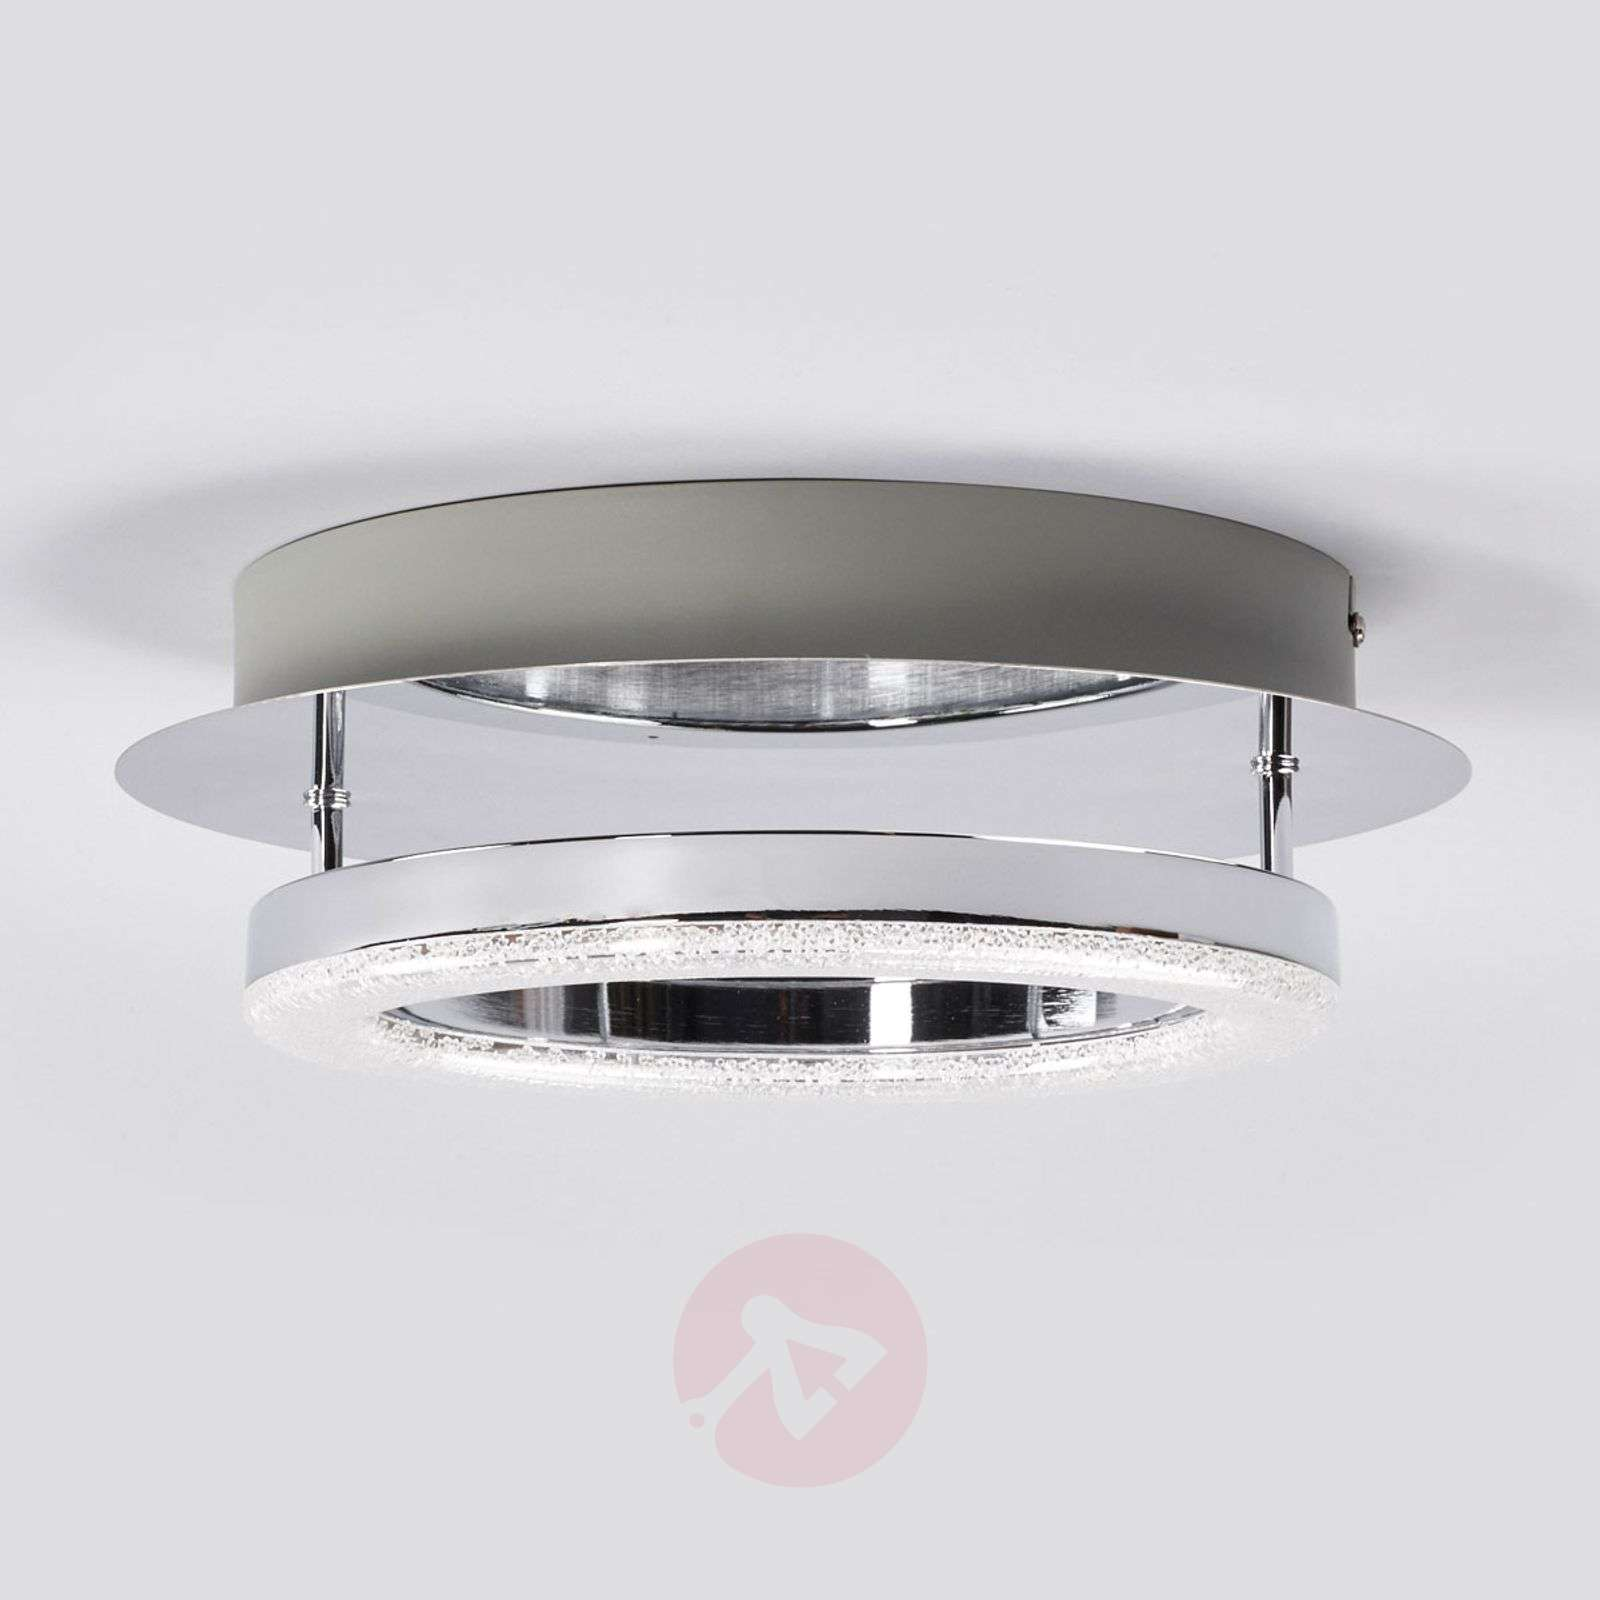 Round Daron LED ceiling lamp-9987043-02